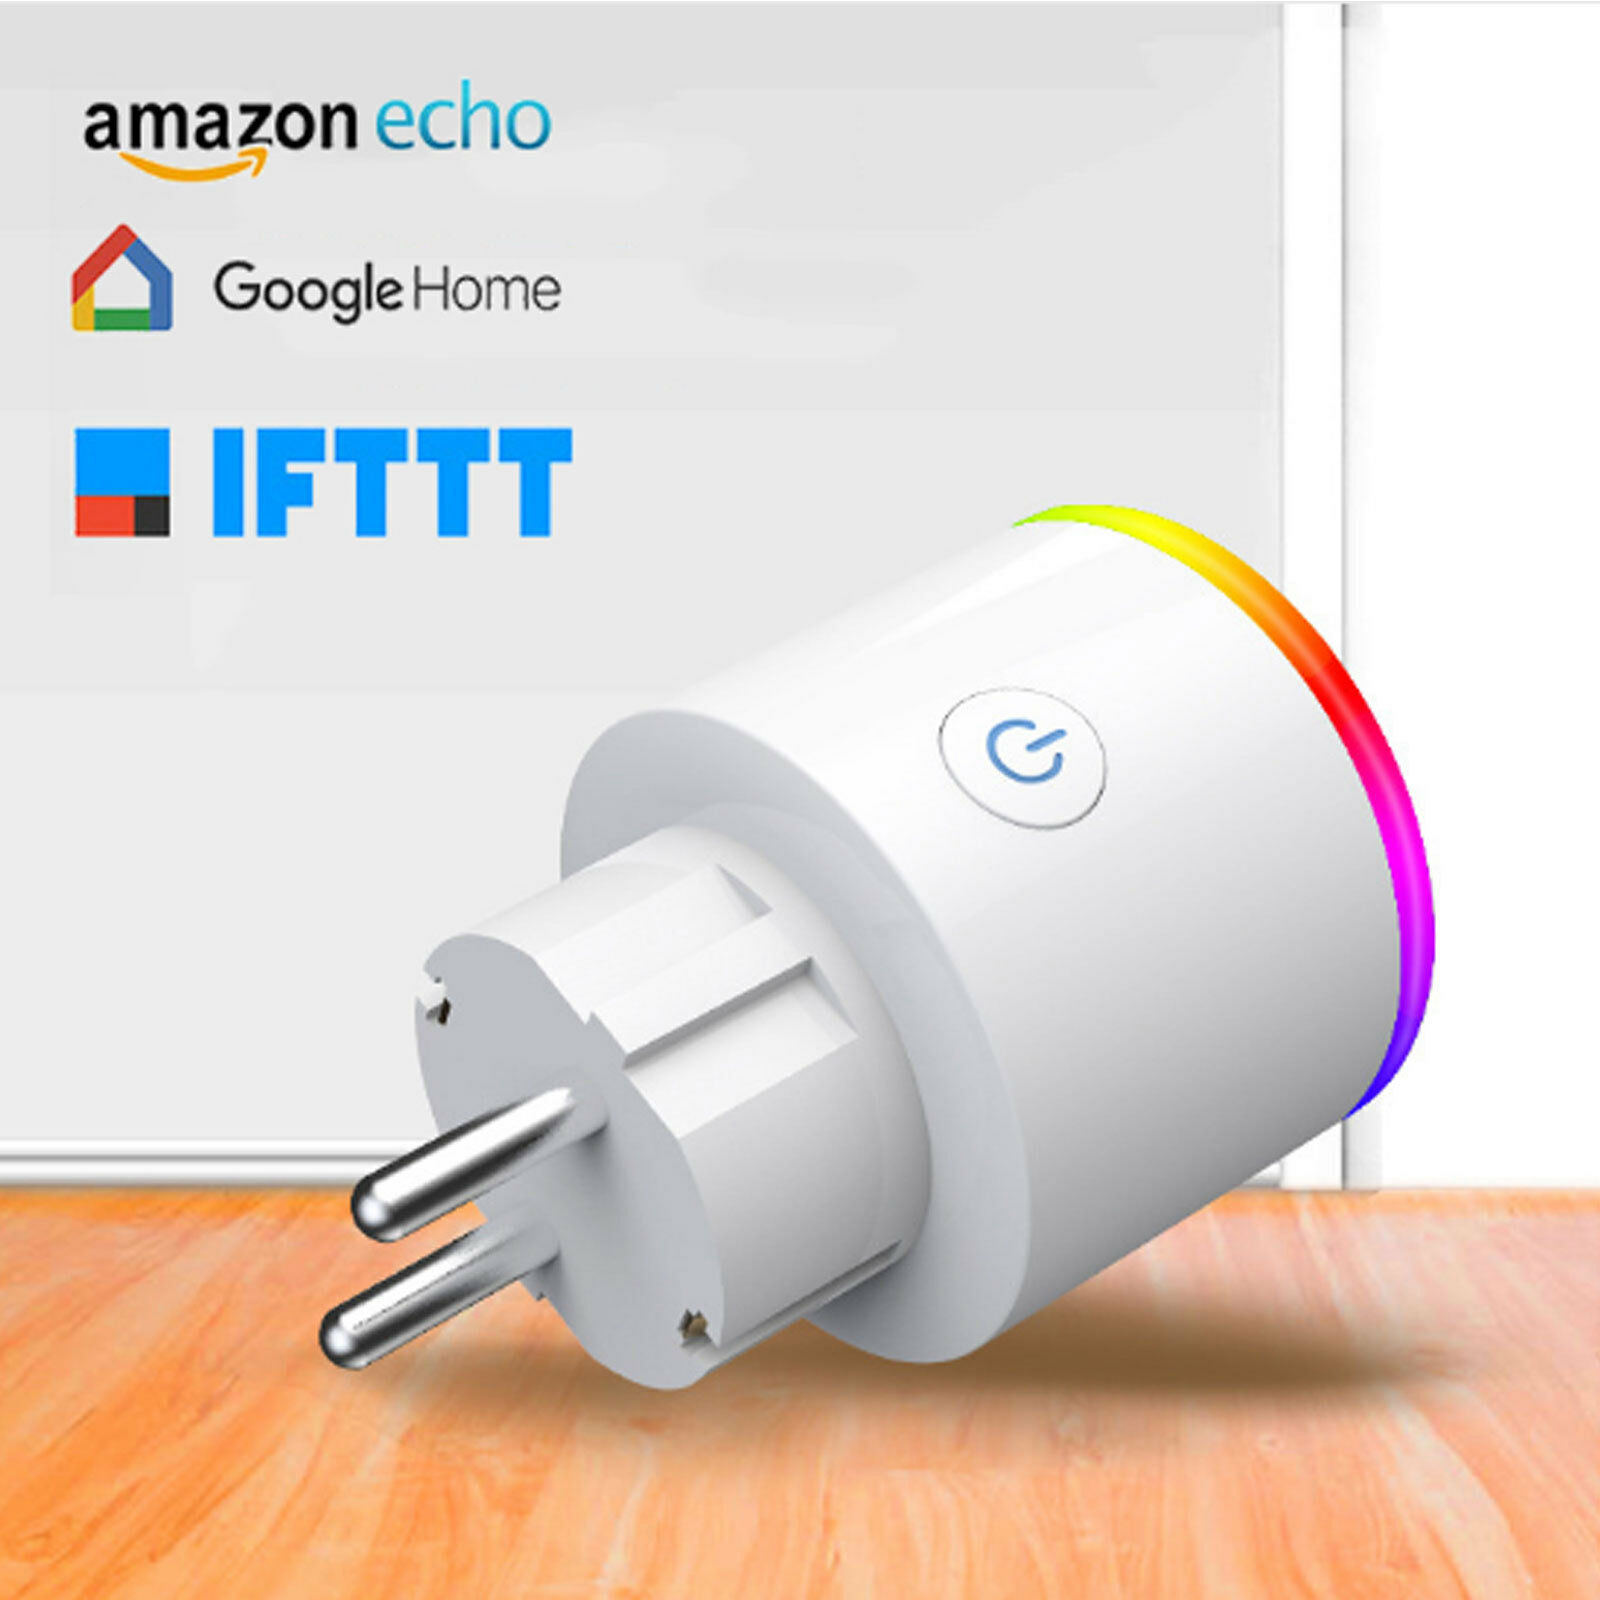 Steckdosen Amazon Details Zu Wifi Smart Steckdose Wlan Amazon Alexa Google Home Fernbedienung Socket Switch